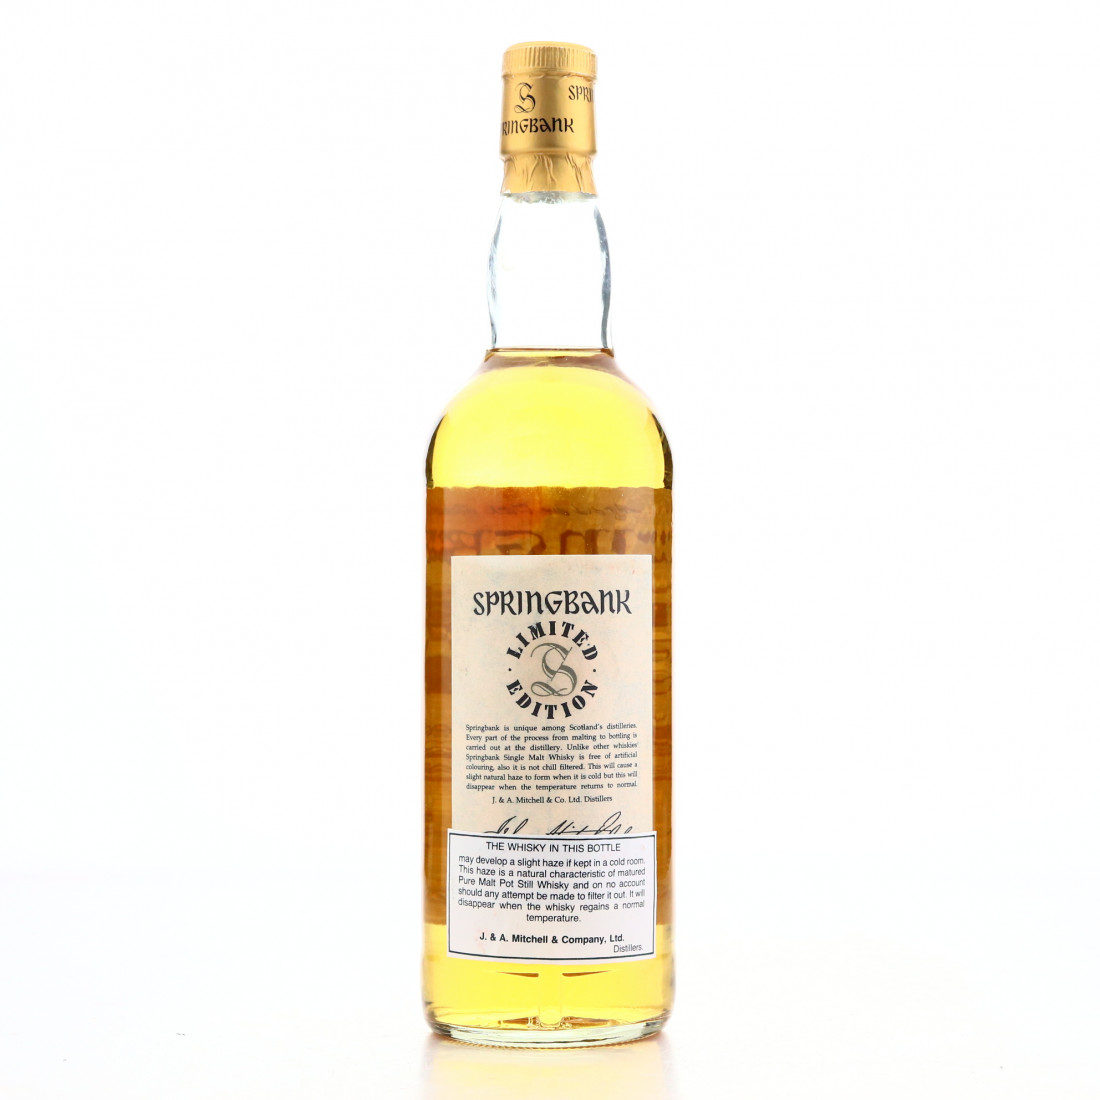 Springbank 50 Year Old Millennium Limited Edition